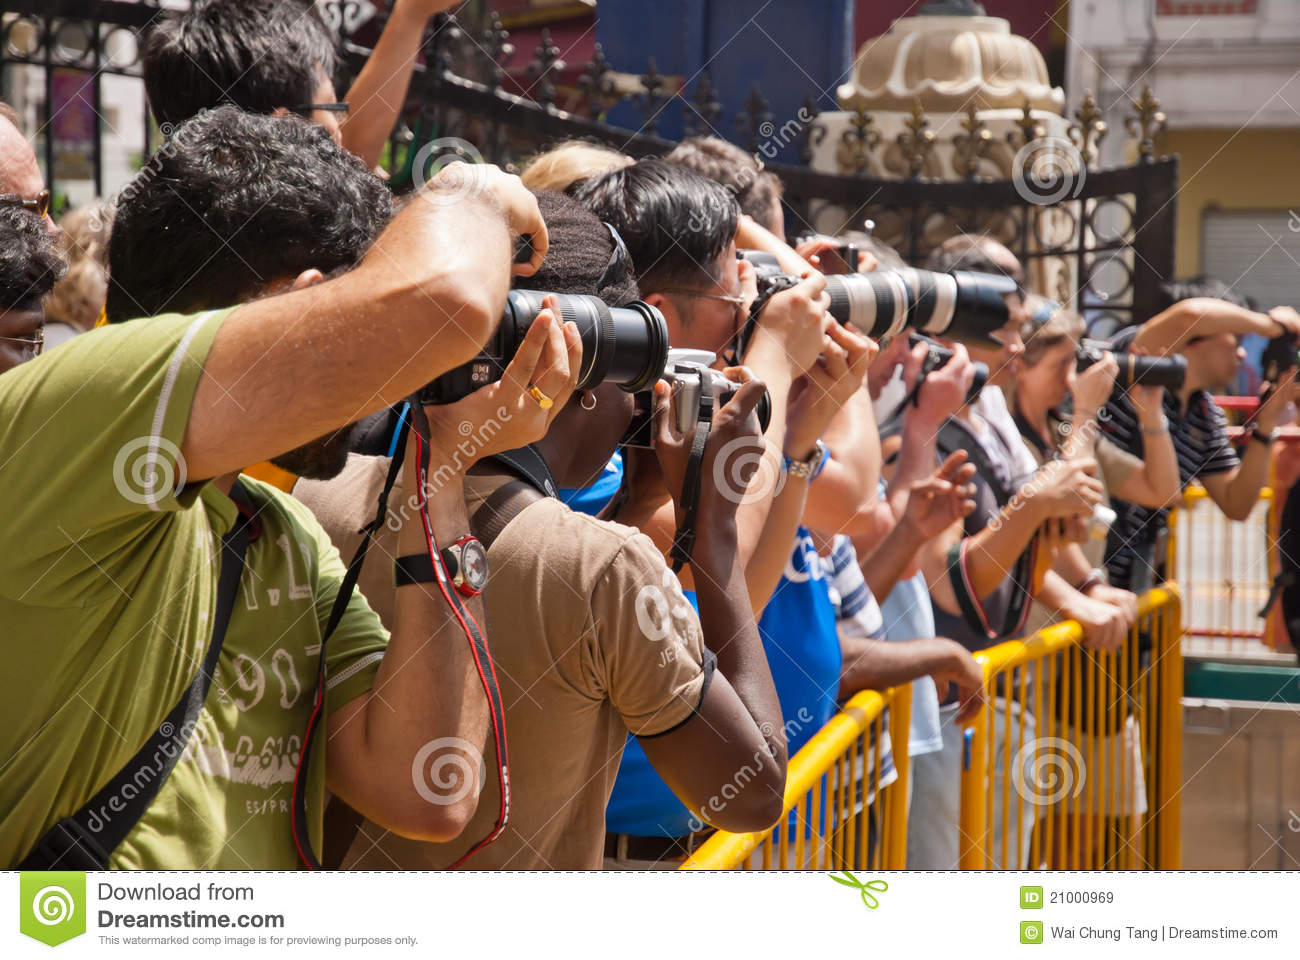 Photographers at event